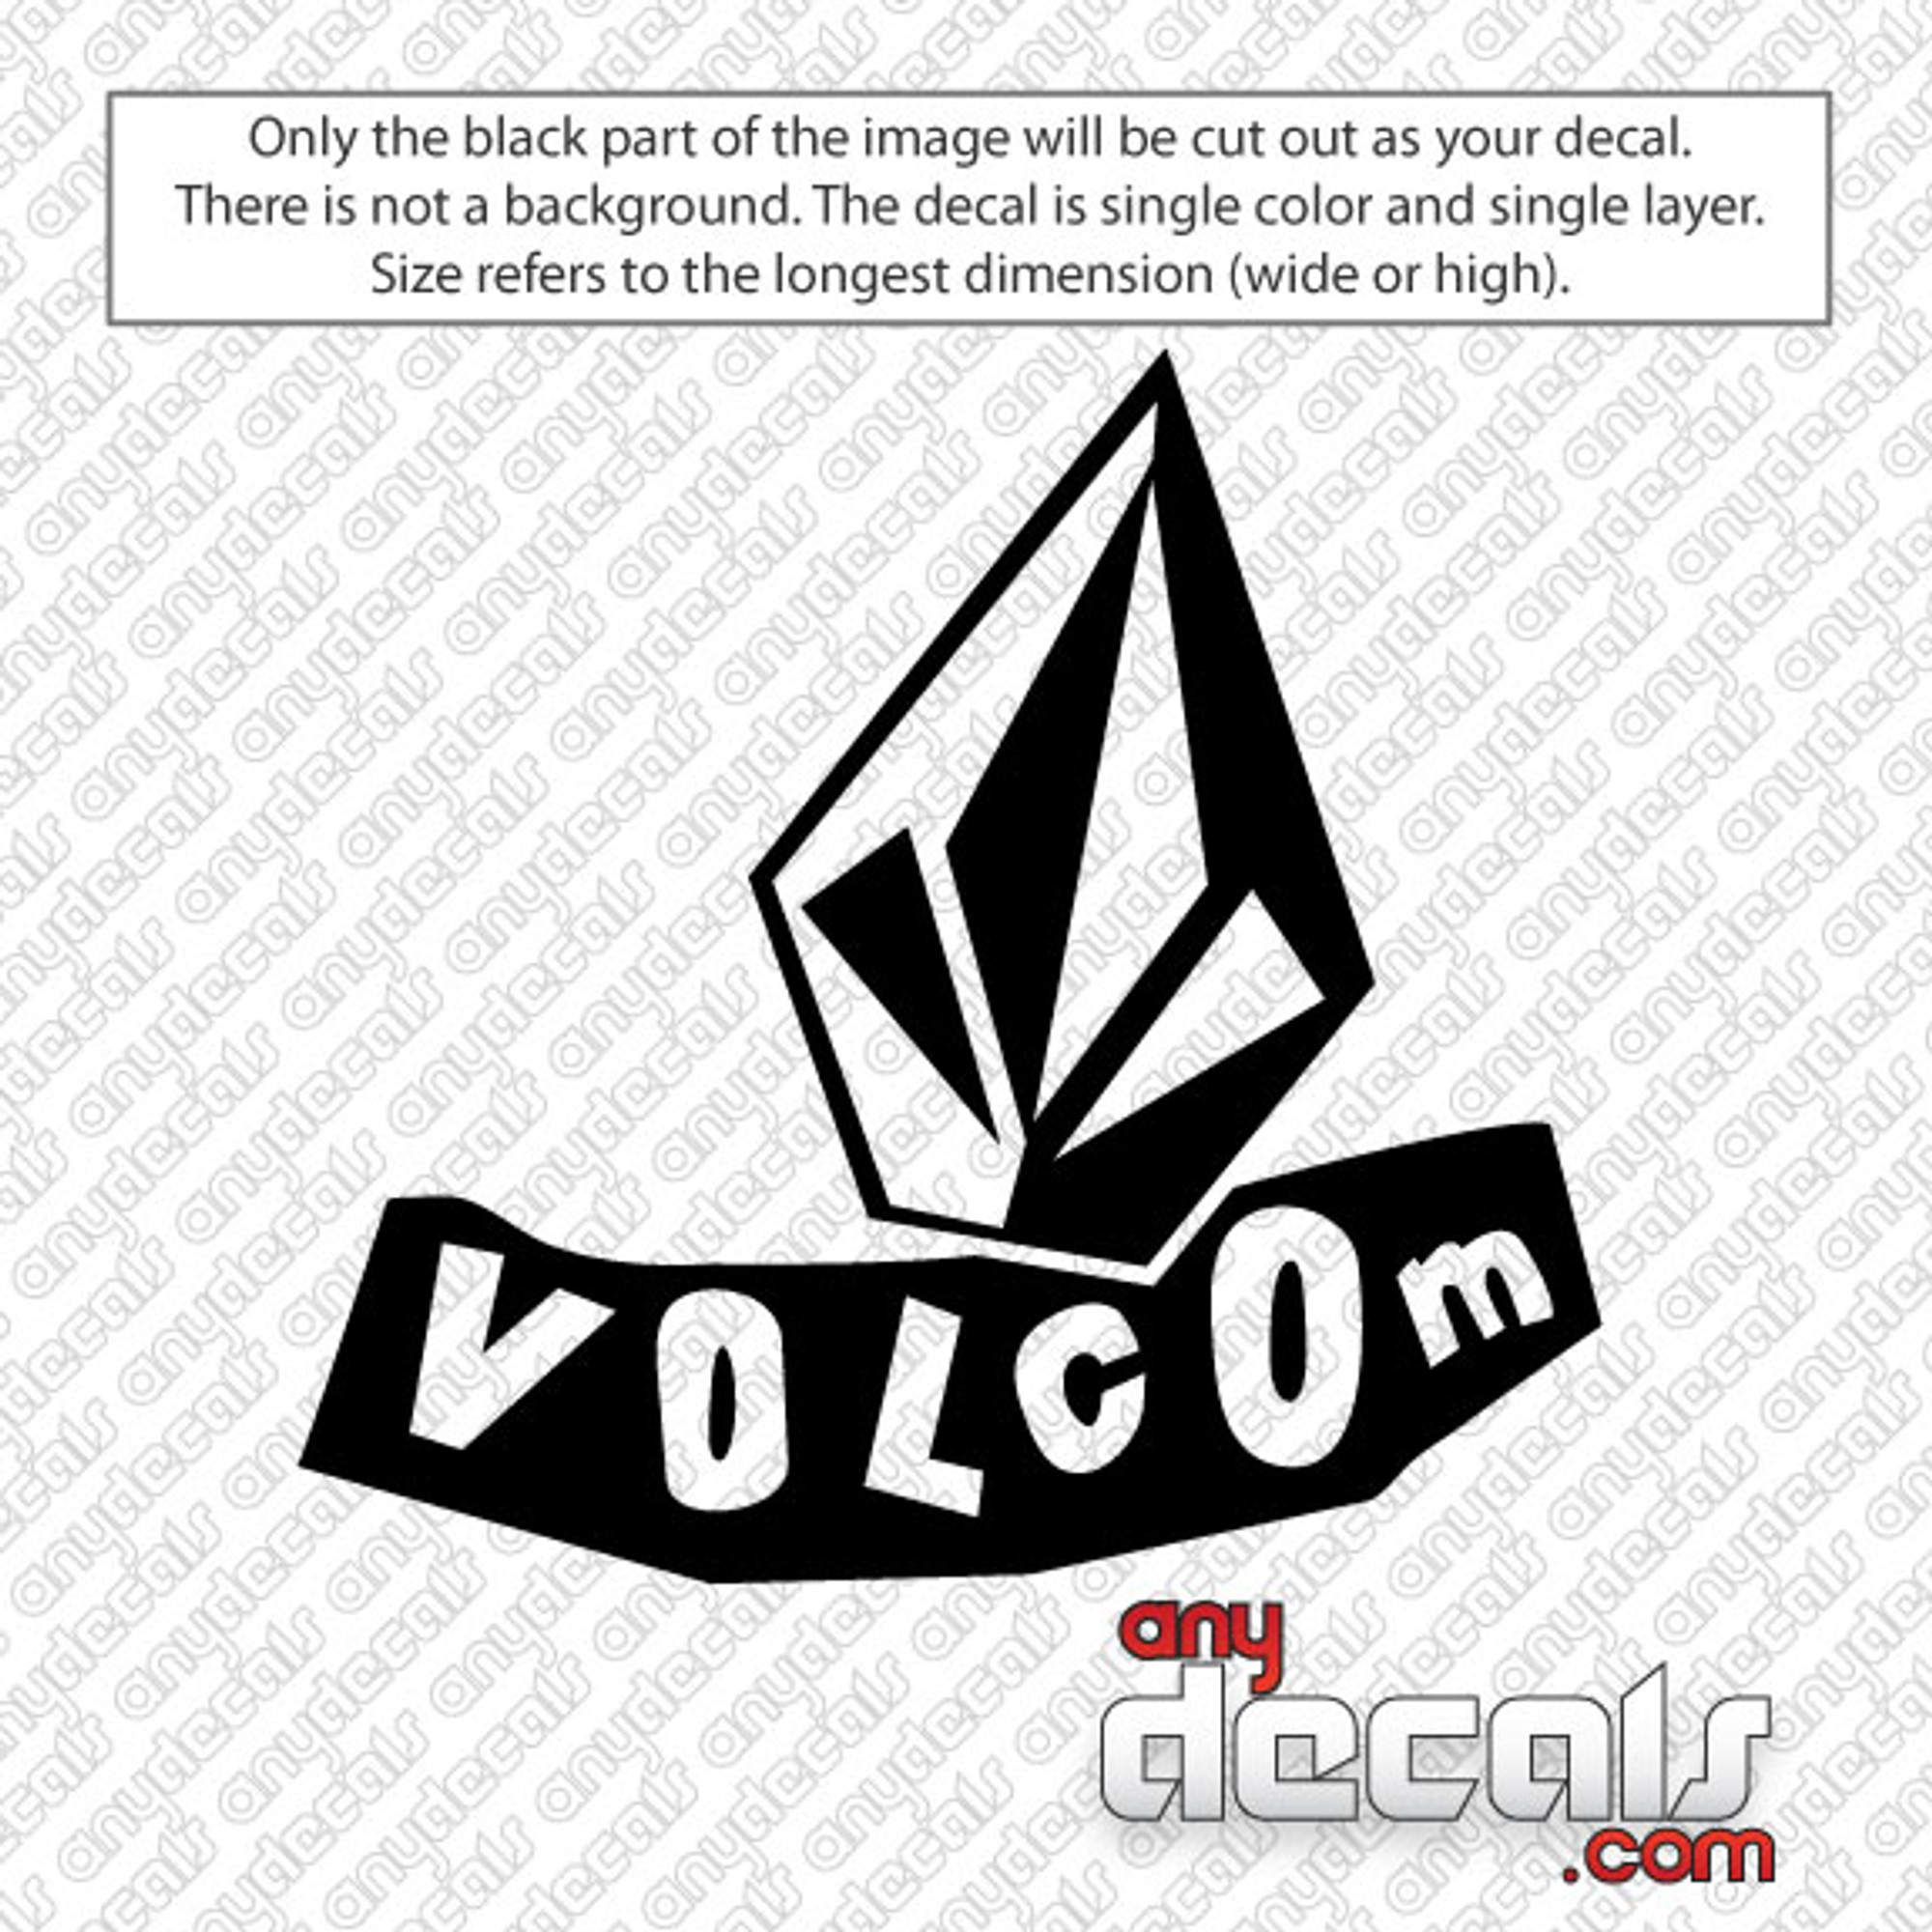 Volcom Leaning Car Decal